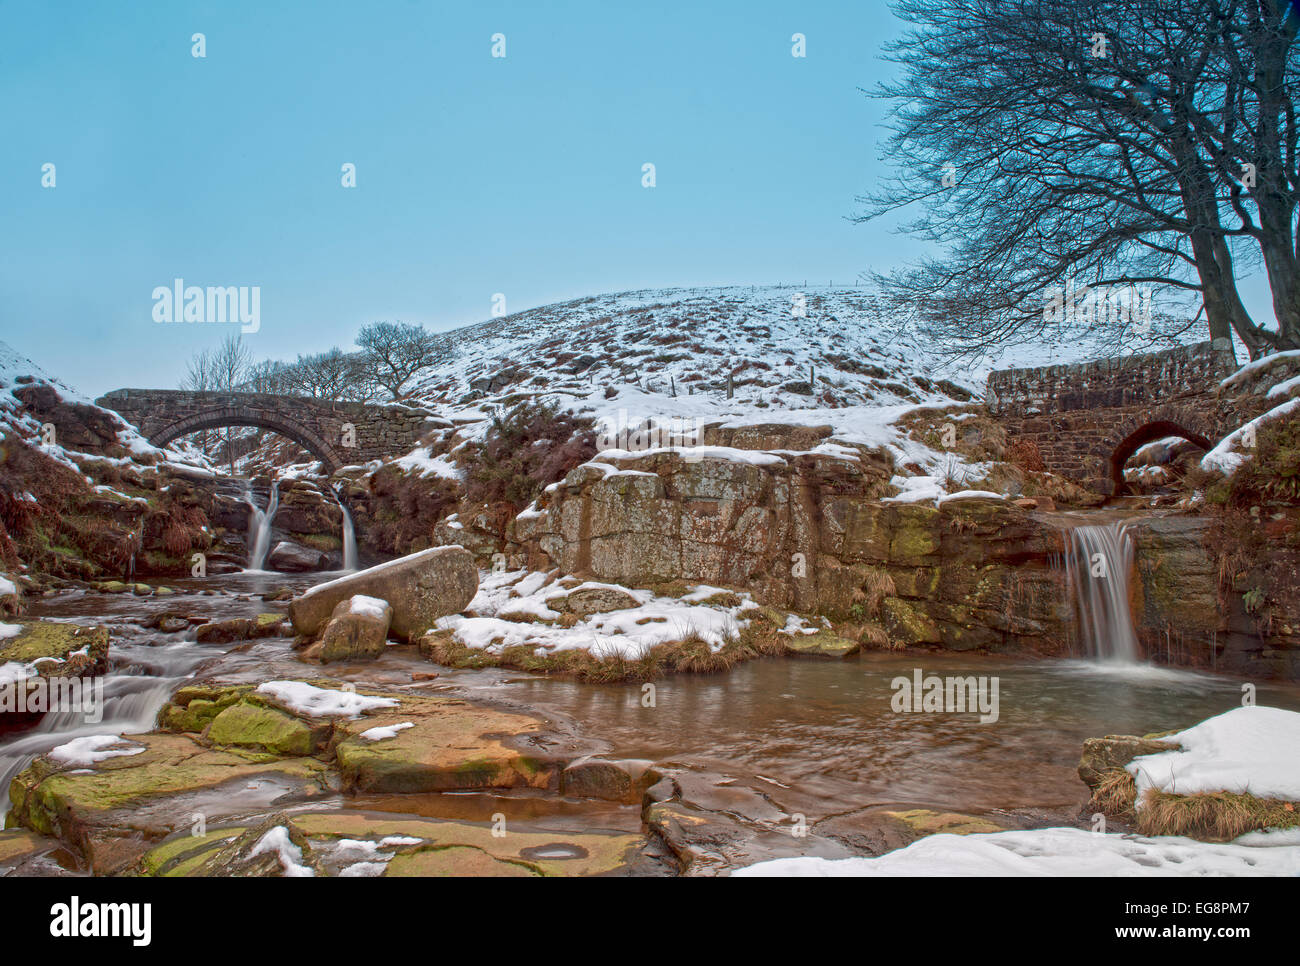 River Dane and Packhorse Bridge at Three Shire Heads-also known as Three Shires Head, near Flash, Peak District, Stock Photo